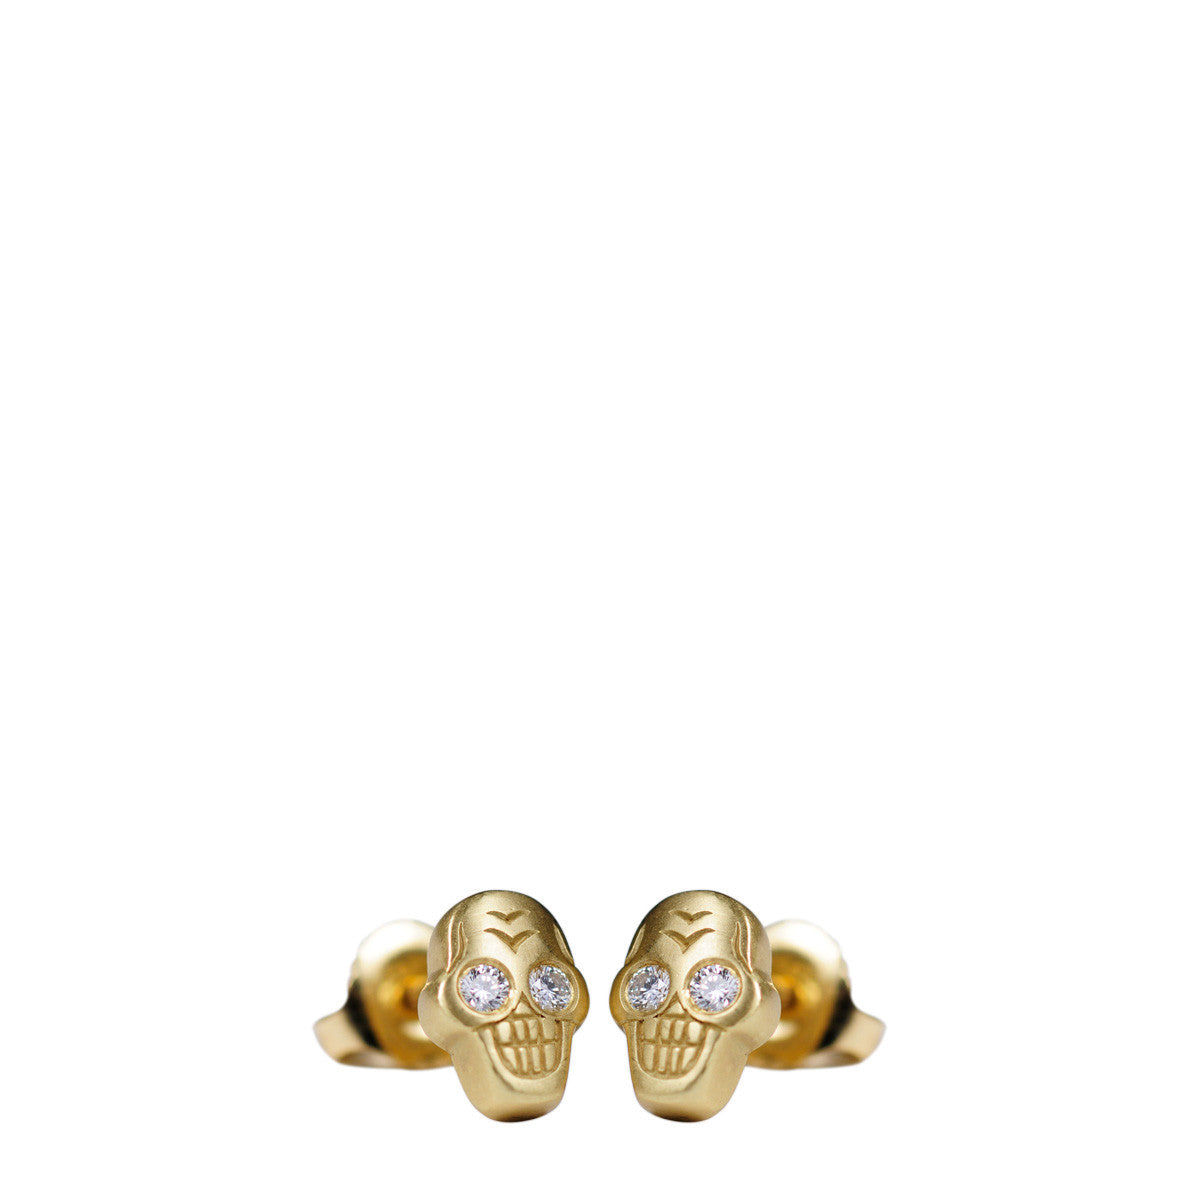 18K Gold Tiny Skull Stud Earrings with Diamonds